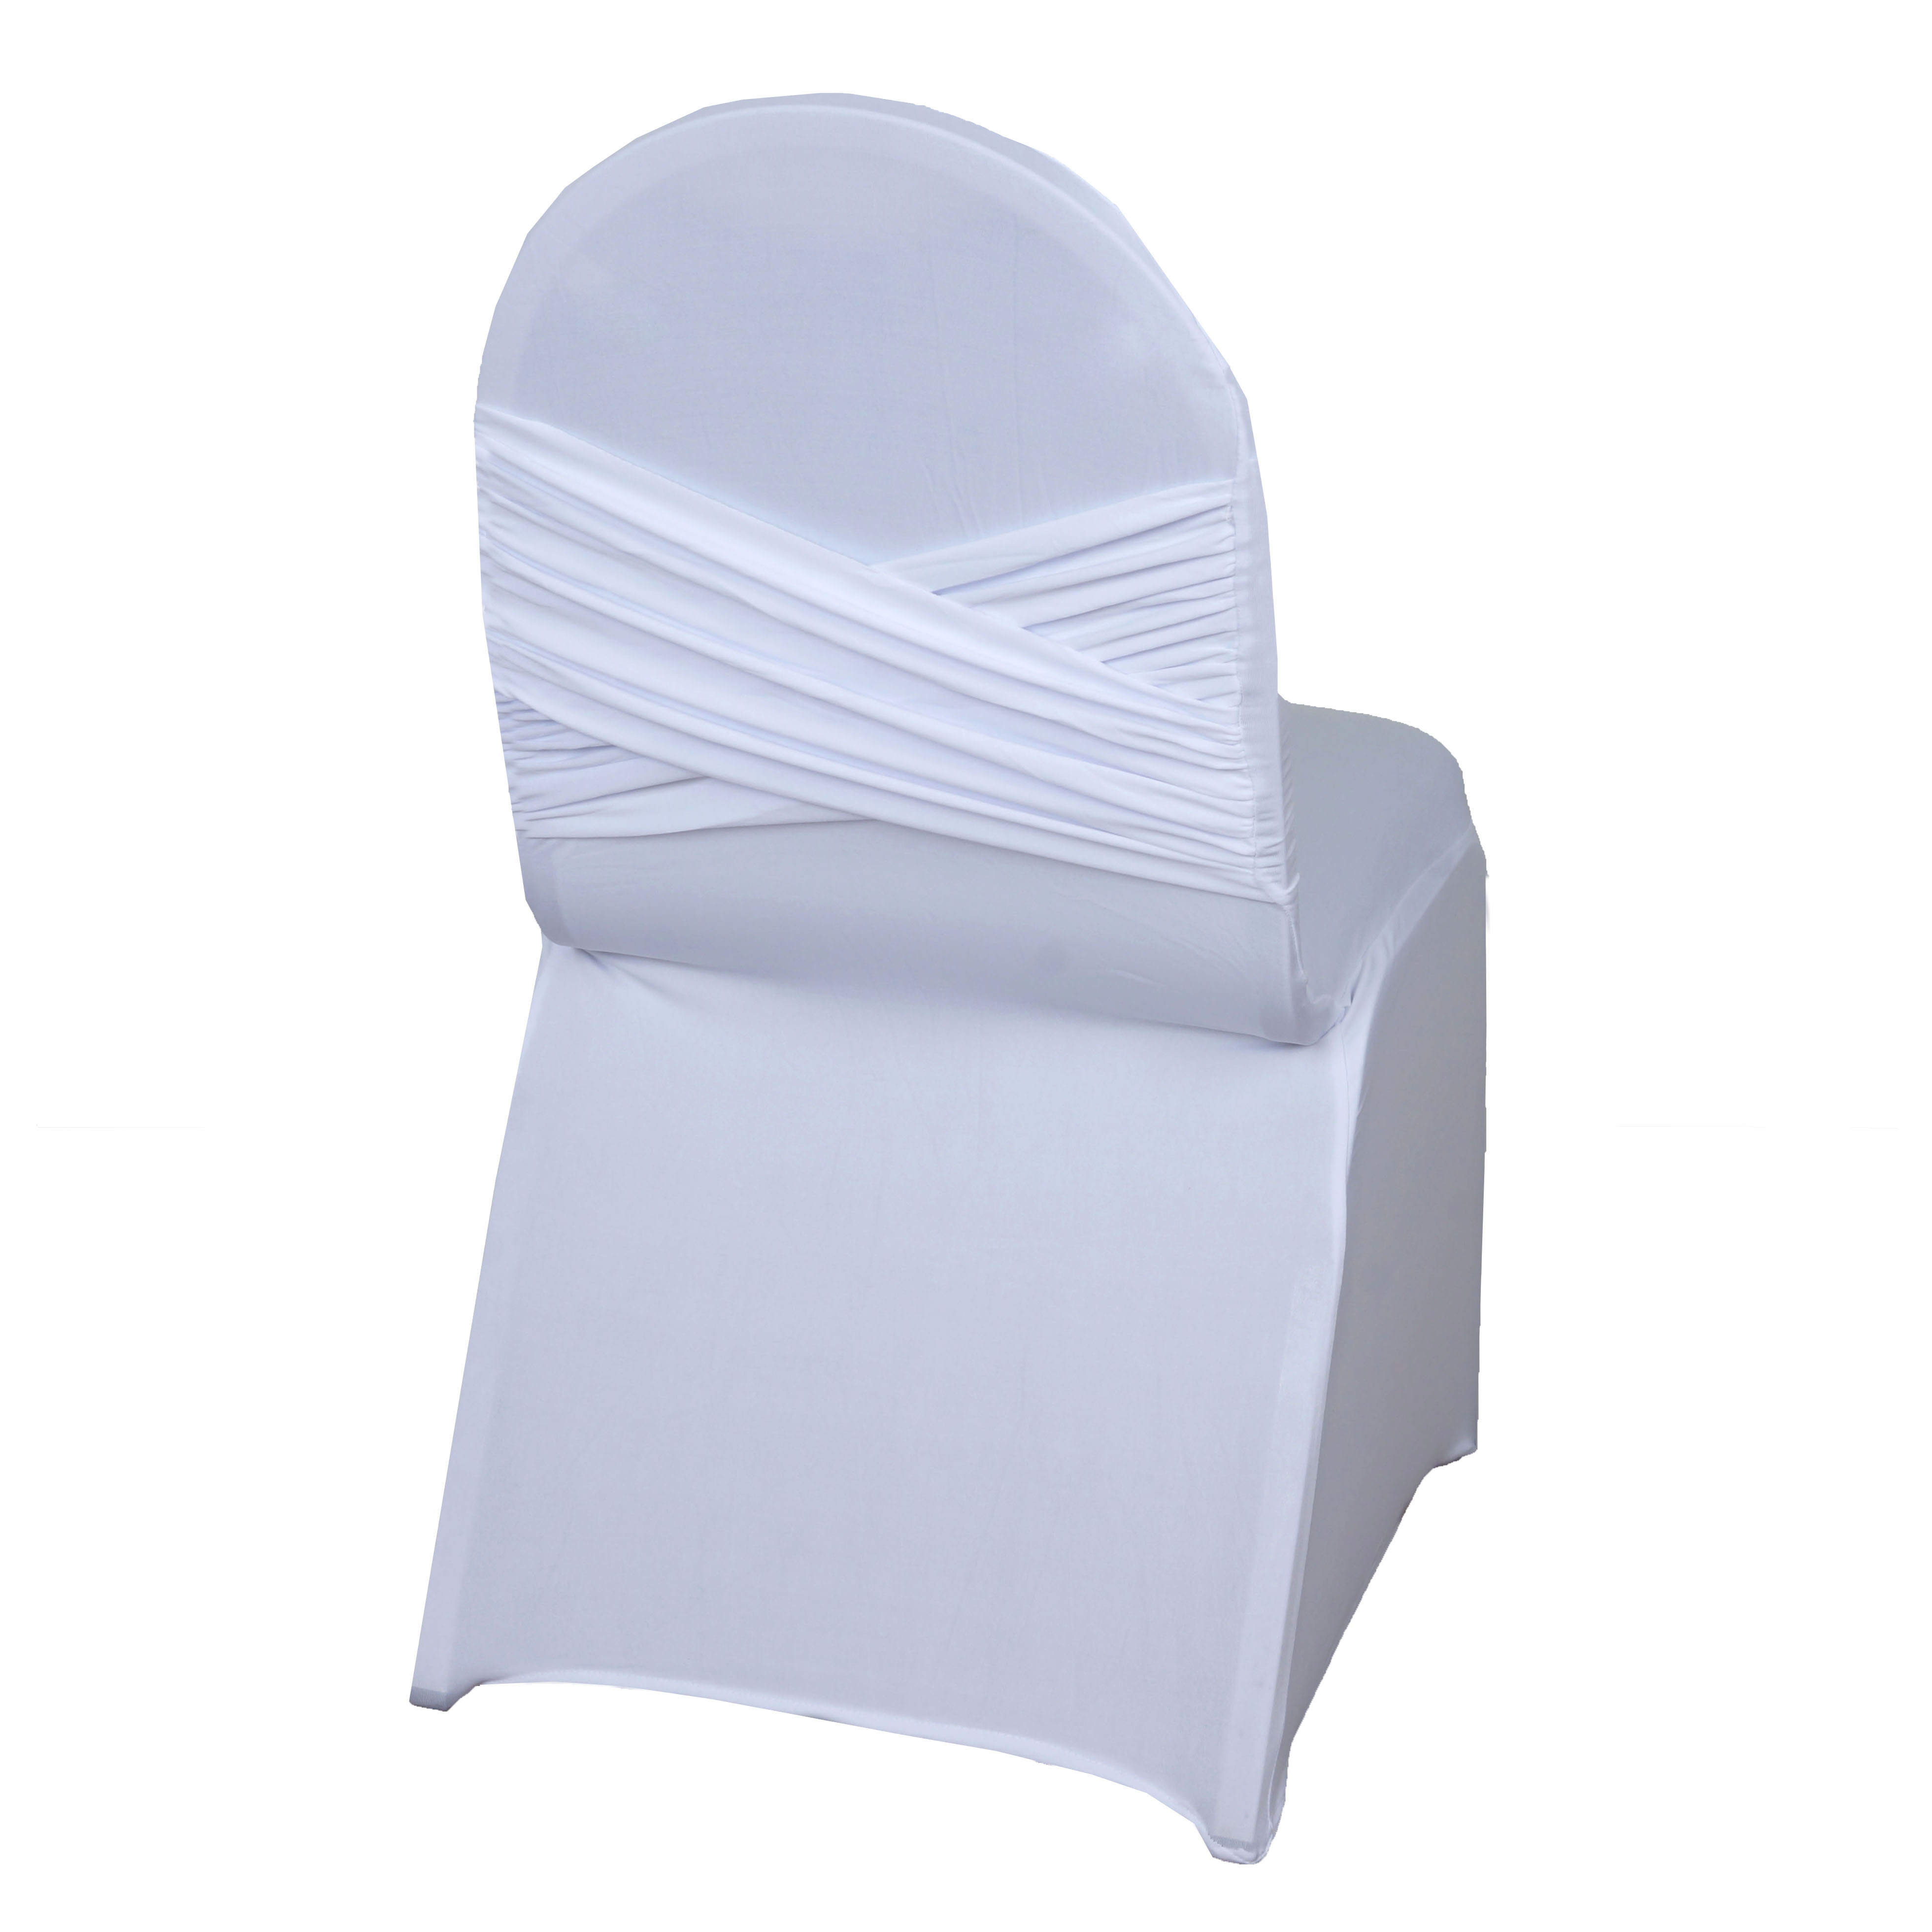 Banquet Chair Covers - 50 pc spandex banquet chair cover stretchable crisscross